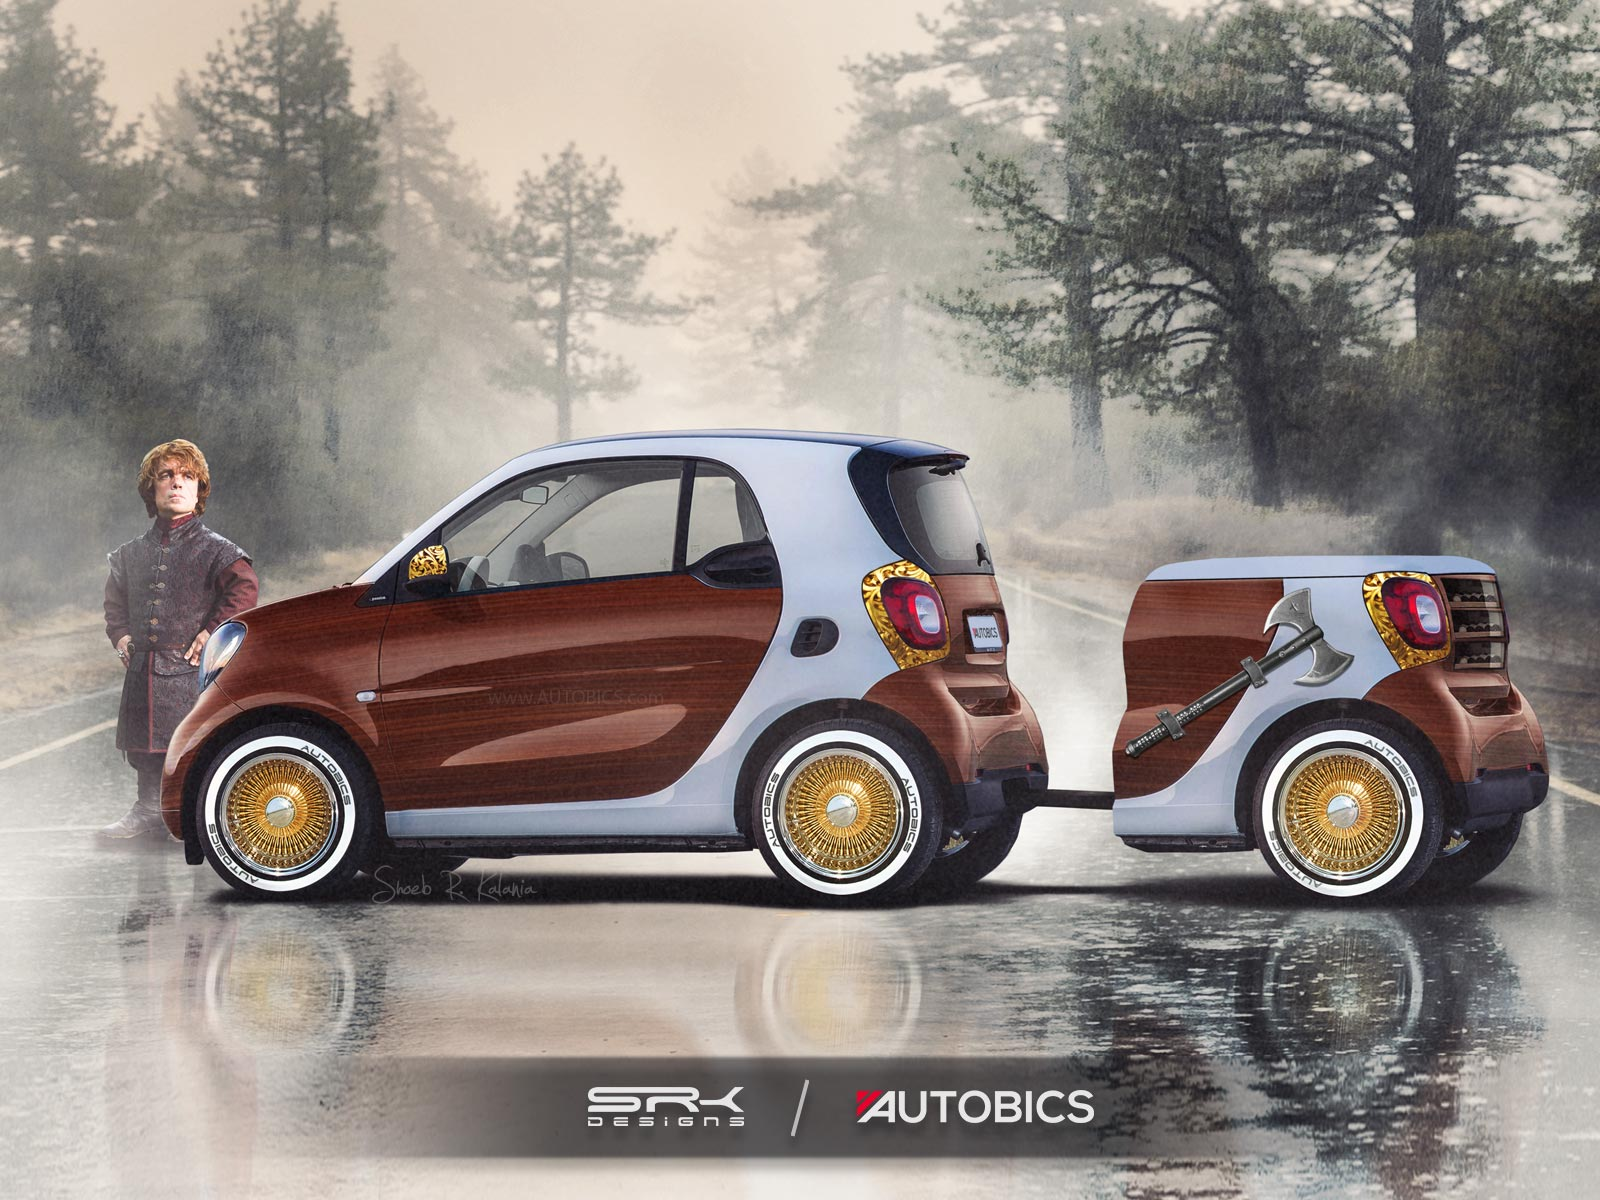 Tyrion Lannister – Smart ForTwo - Game of Thrones